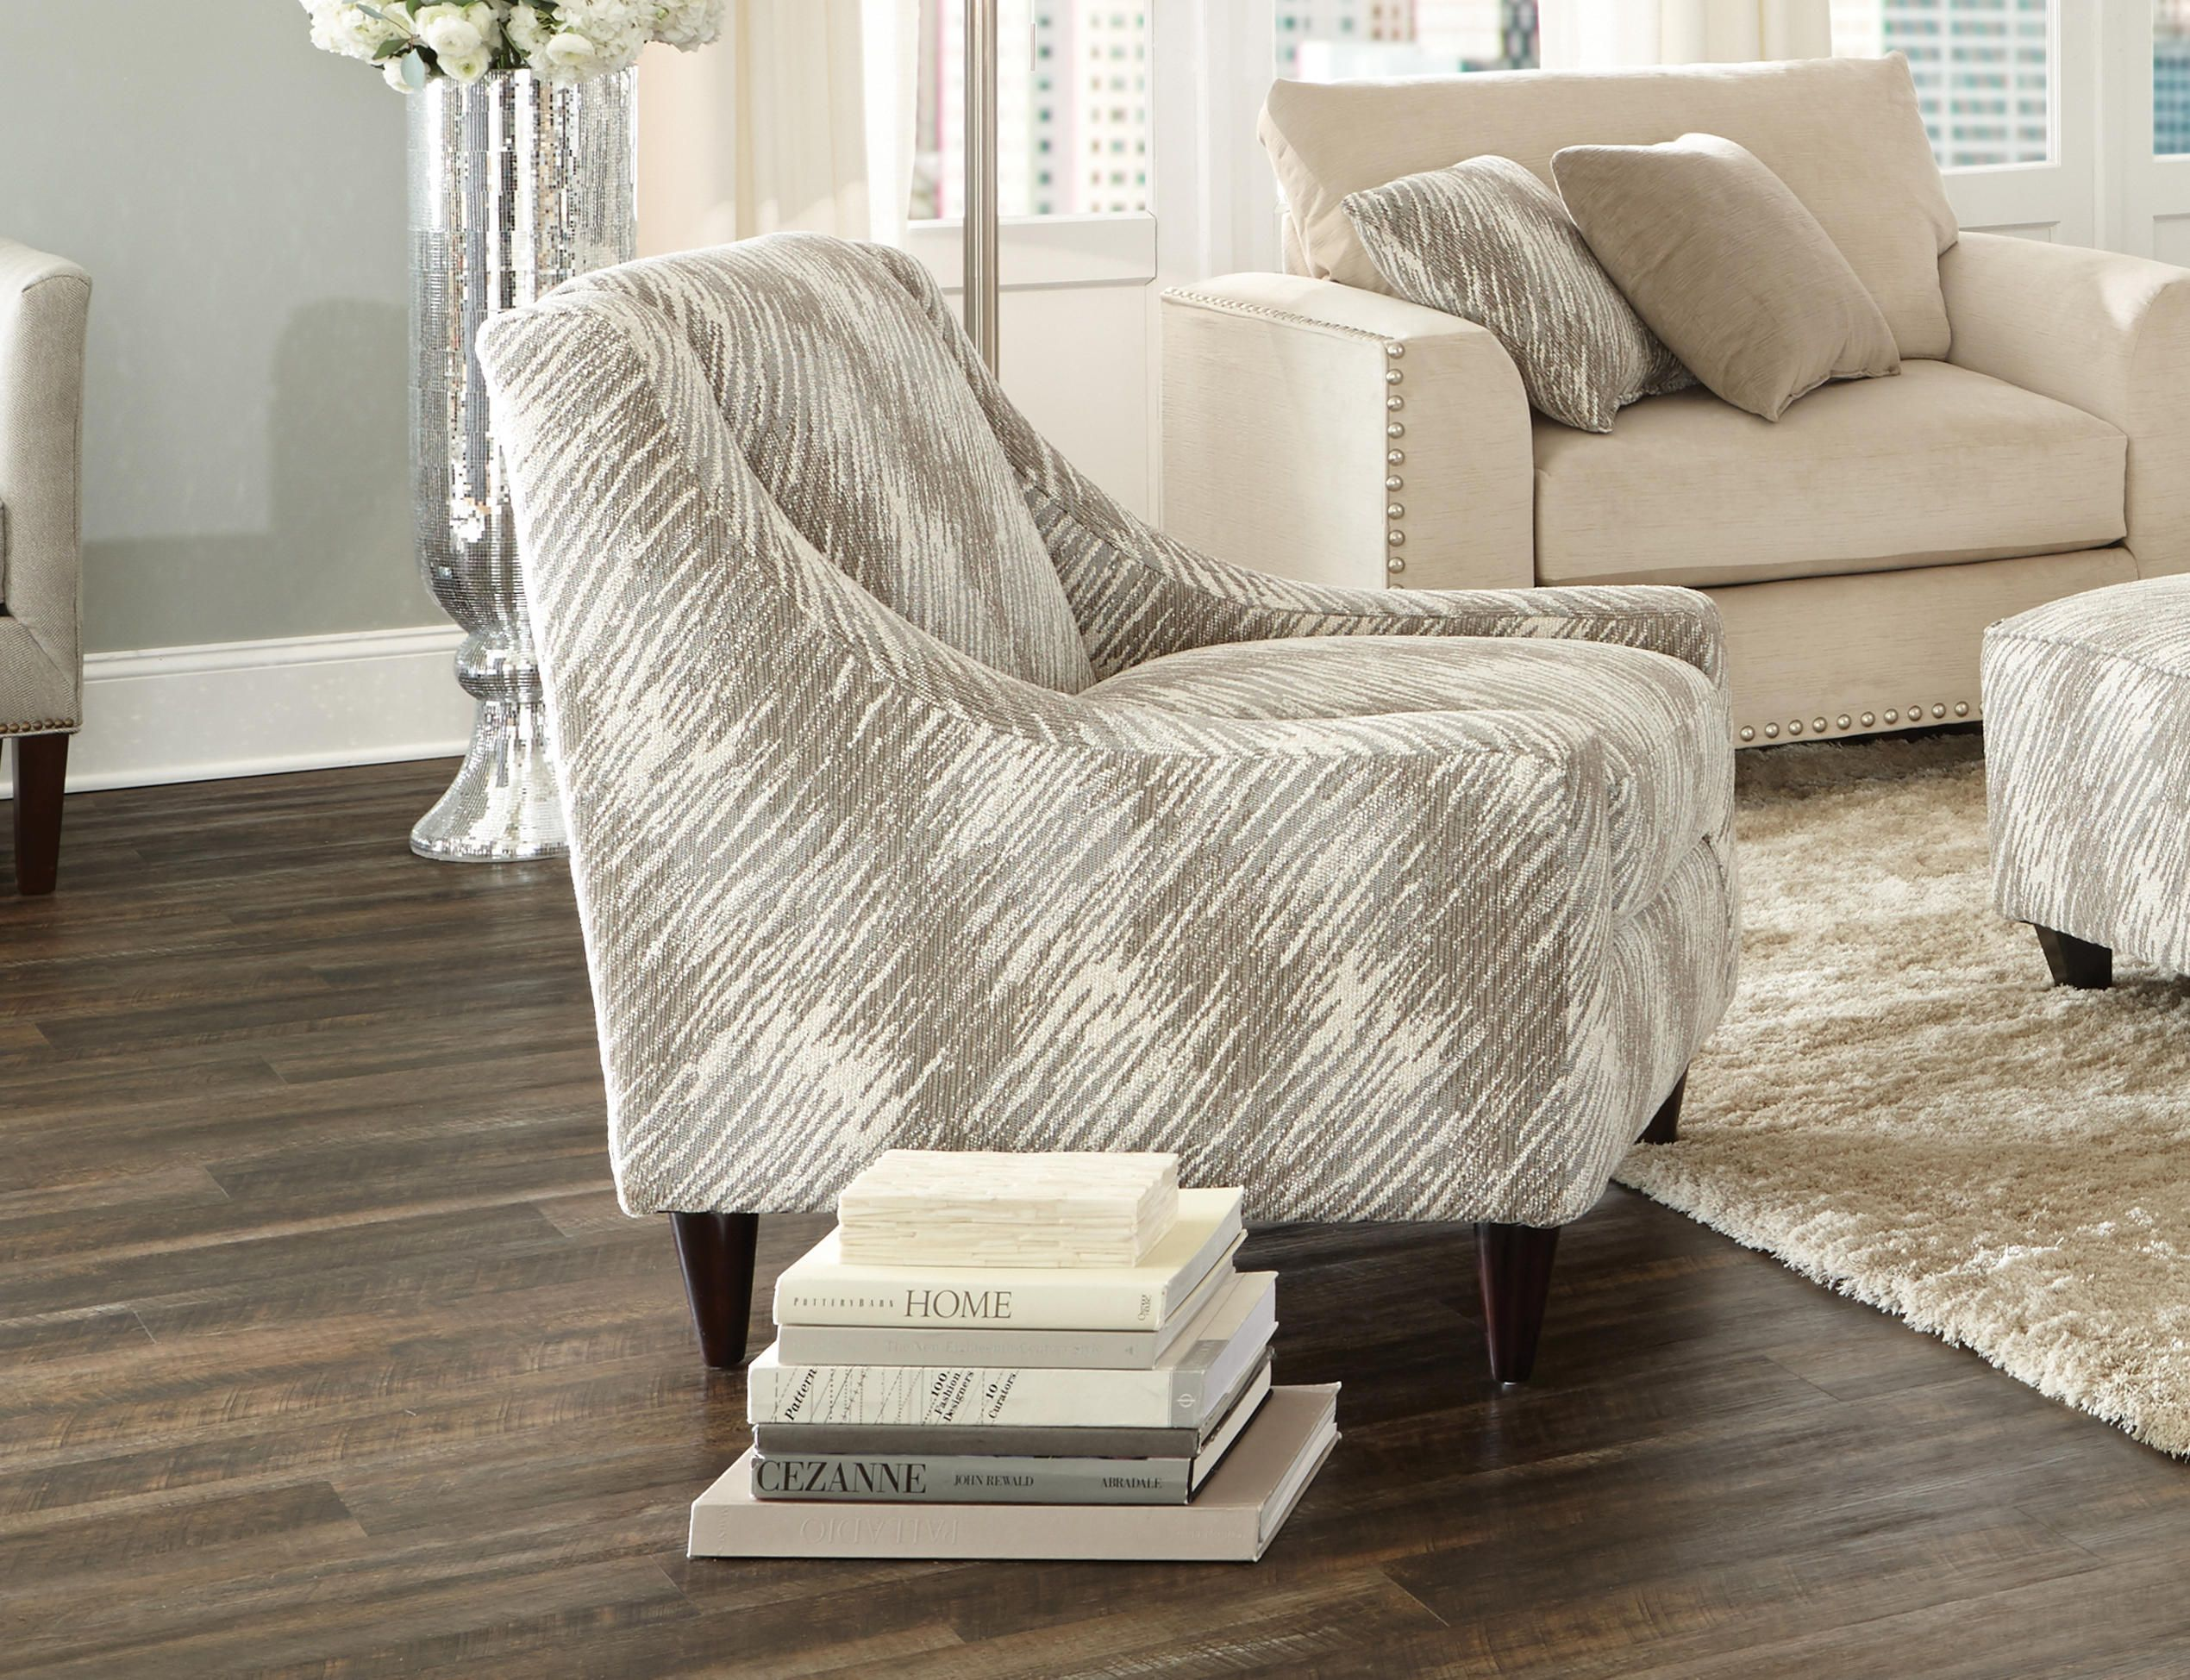 Empire Accent Chair Upholstered arm chair, Slipcovers